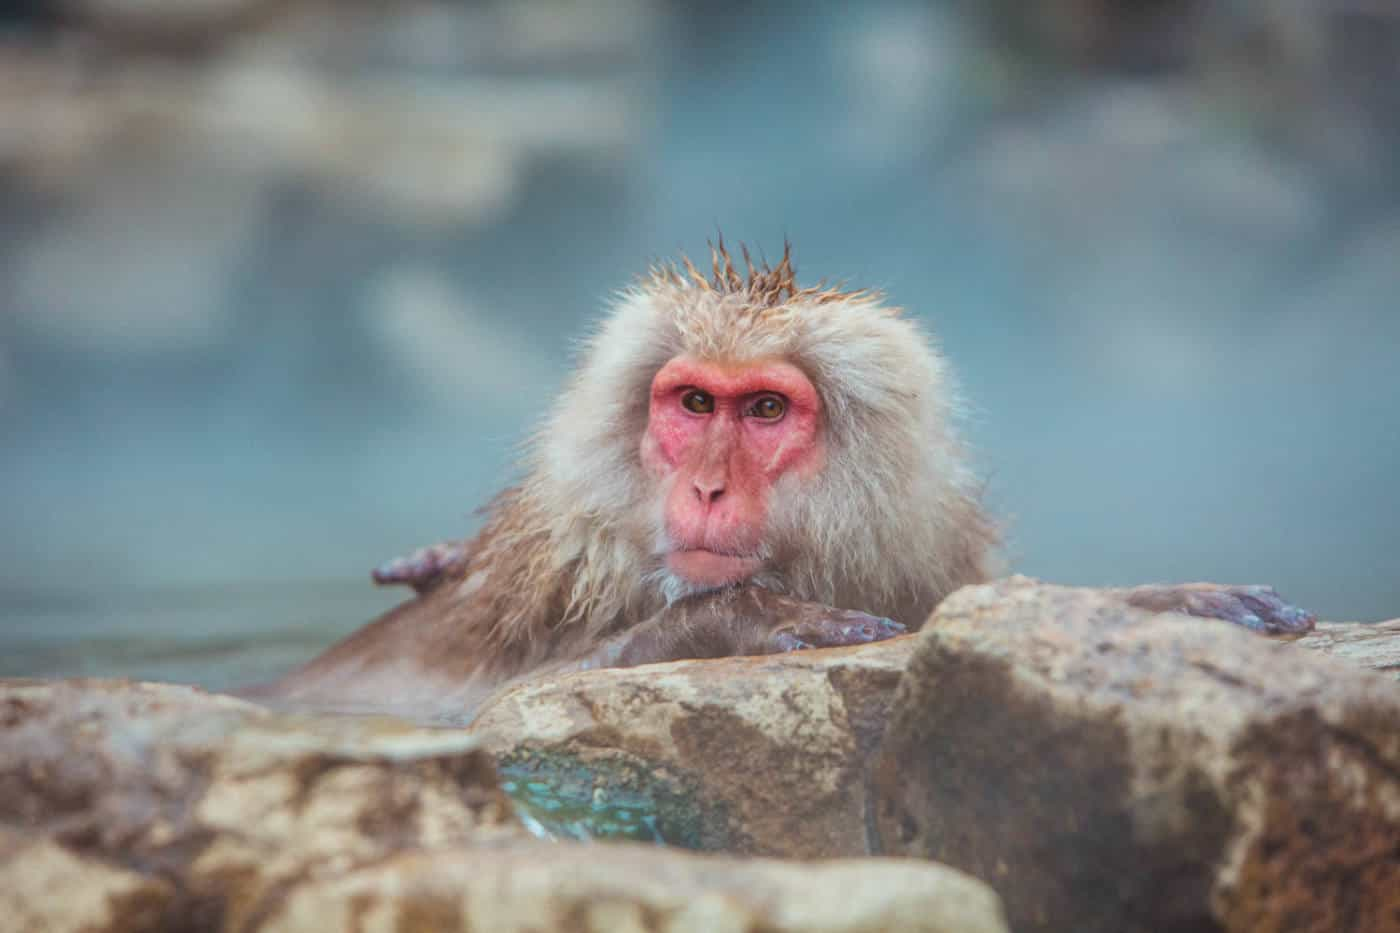 One of the best things to do during a 7 day trip to Japan: visit the Japanese snow monkeys bathing in hot springs